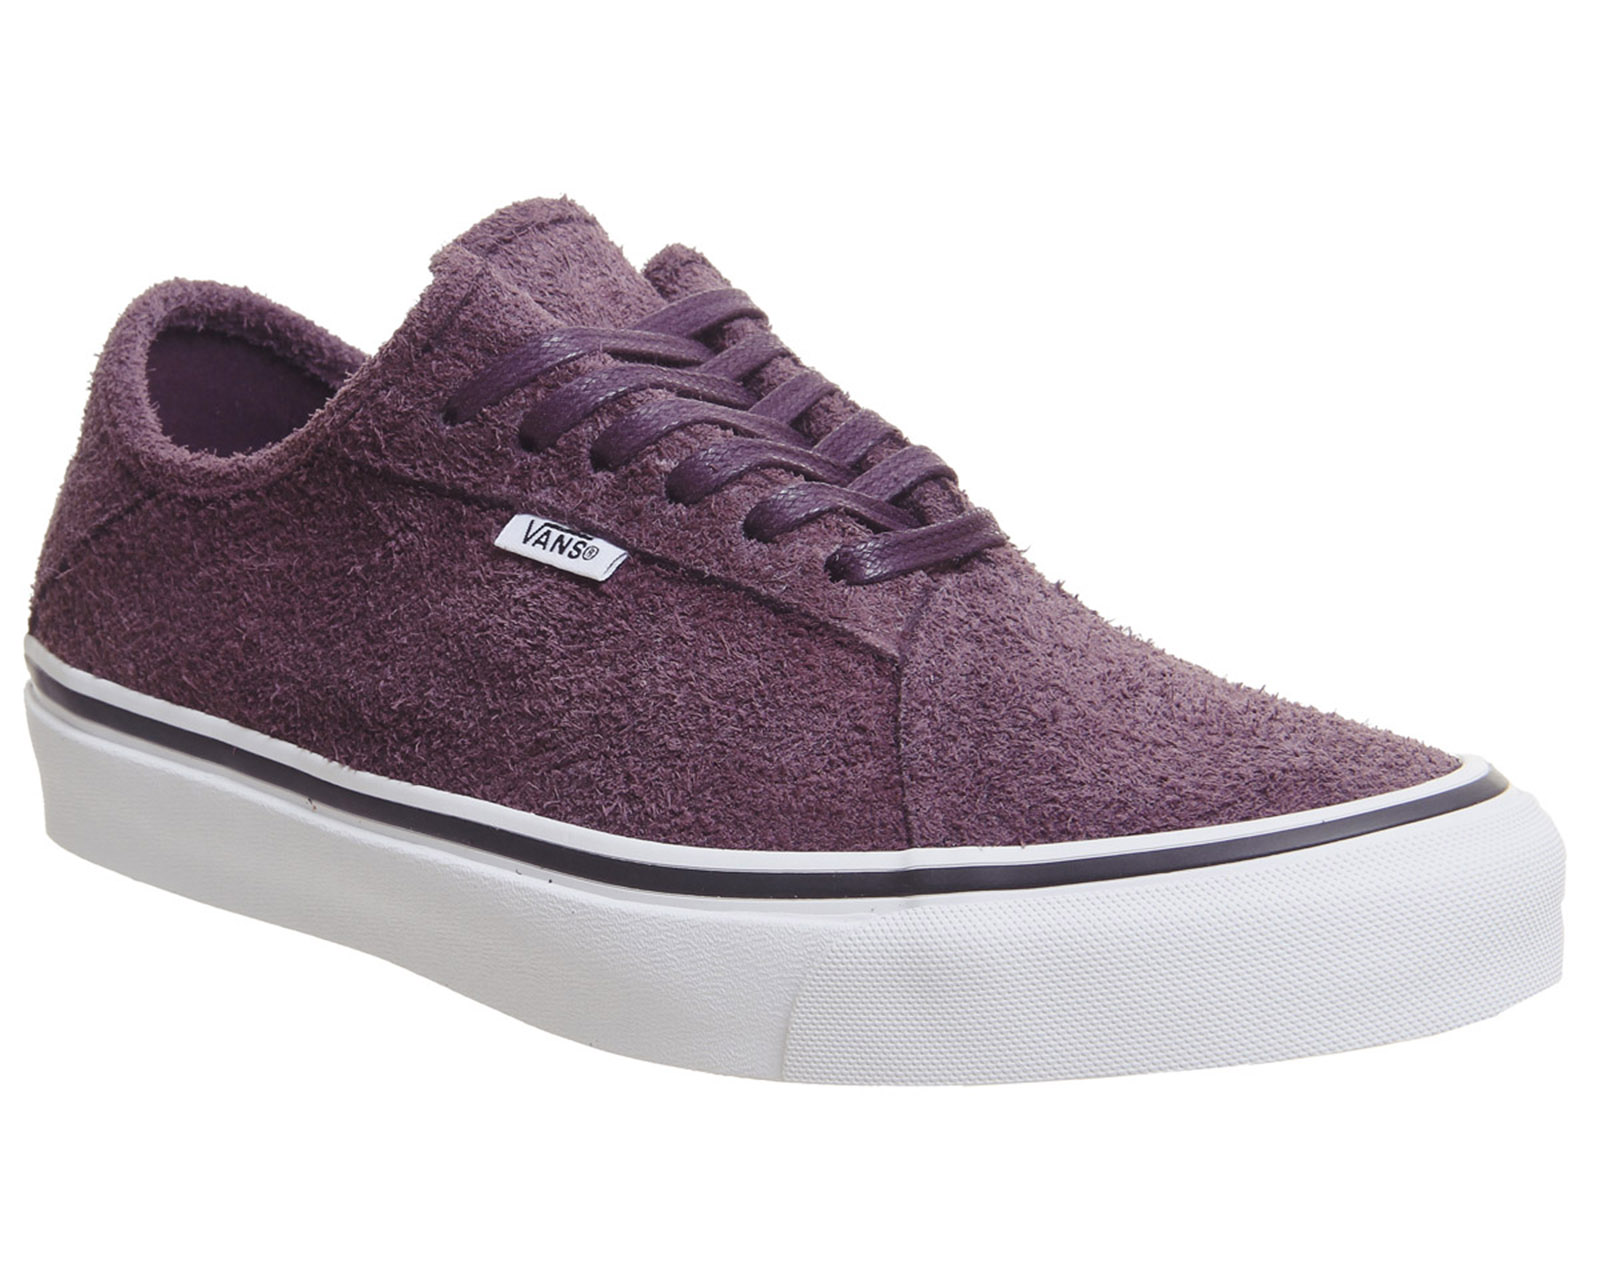 Vans Diamo TRUE Ni Trainers RAISIN TRUE Diamo WEISS Trainers Schuhes 52b4ed